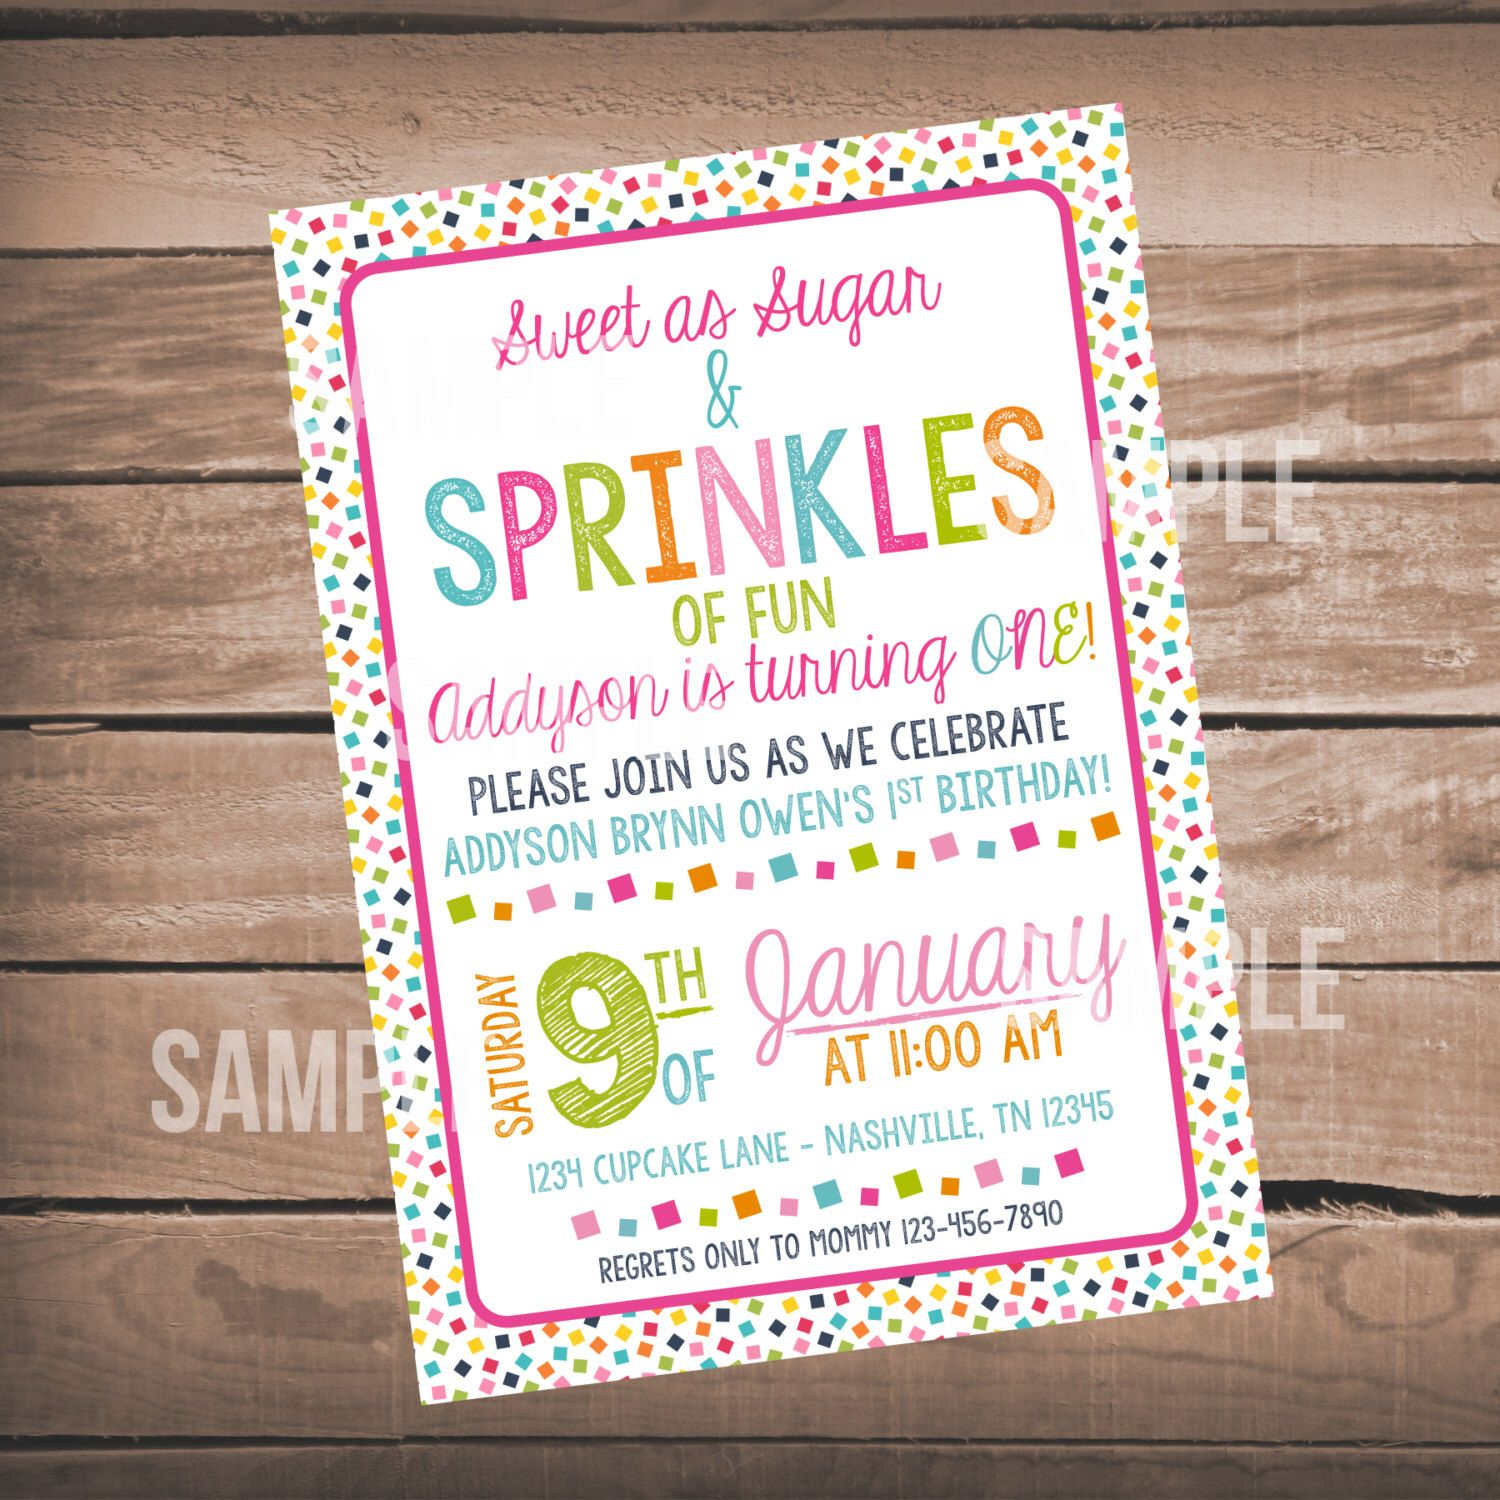 Sprinkles of fun birthday invitation first birthday invitation sprinkles of fun birthday invitation first birthday invitation sprinkles first birthday party by wearehavingaparty on etsy filmwisefo